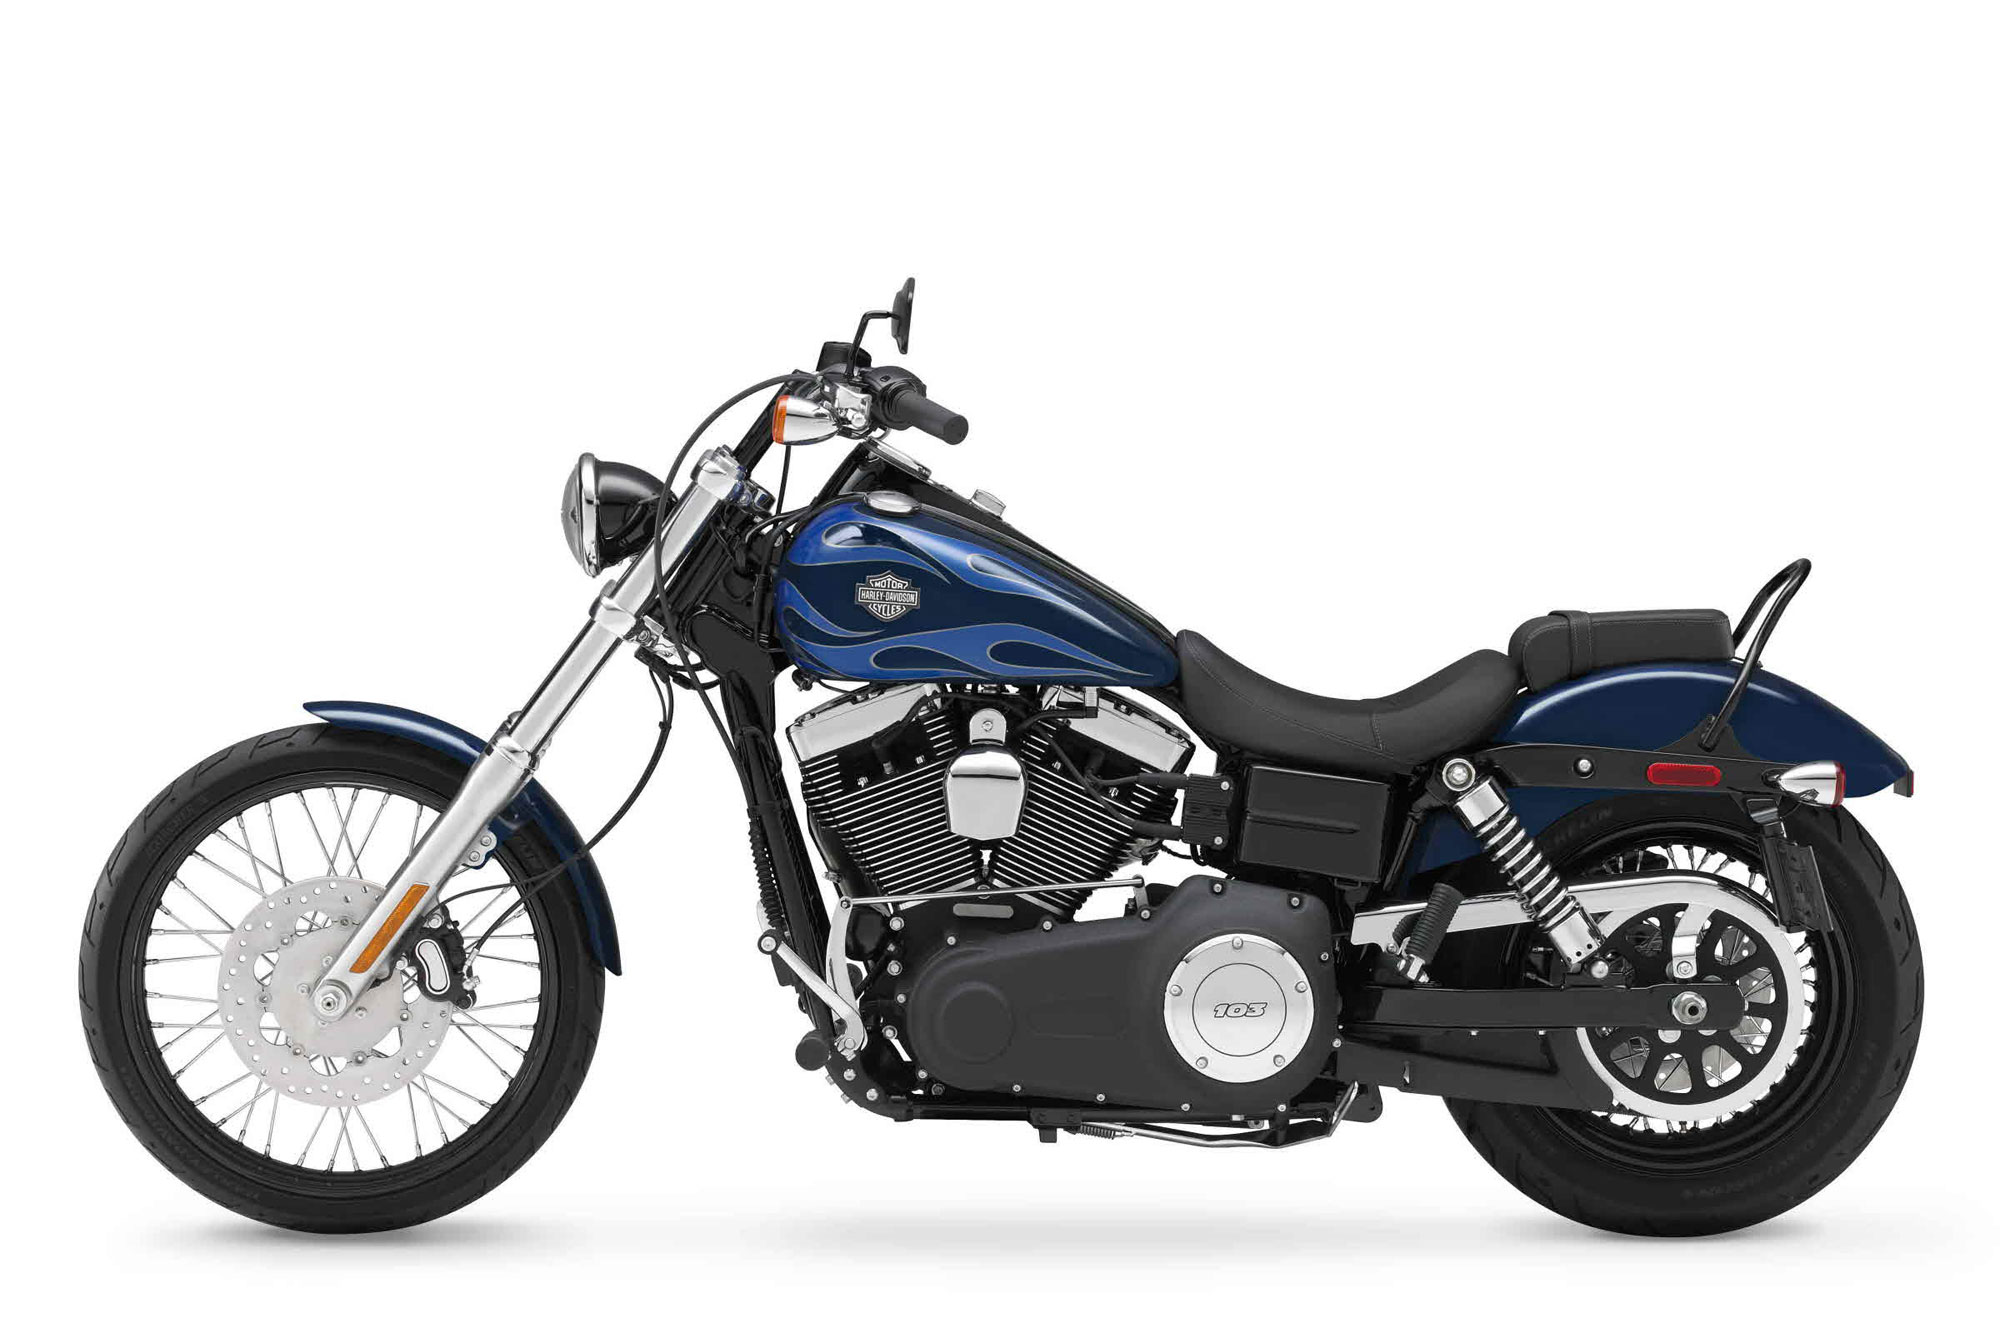 hight resolution of 2012 harley road glide wiring diagram enthusiast wiring diagrams u2022 2004 2007 harley davidson wiring harley davidson night train